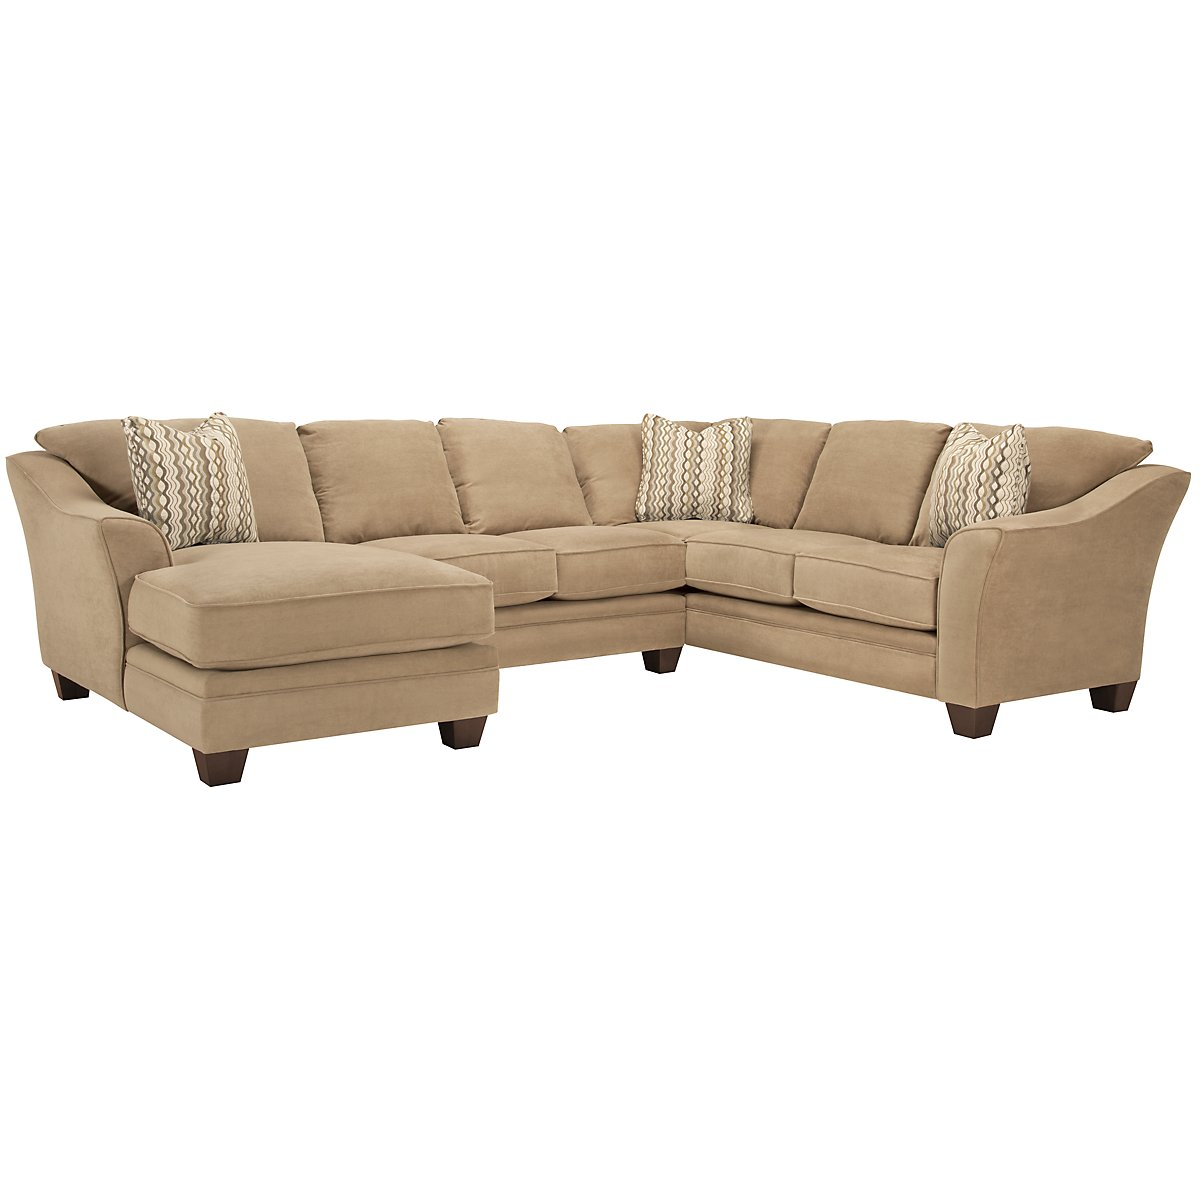 Grant2 Light Brown Microfiber Left Chaise Sectional